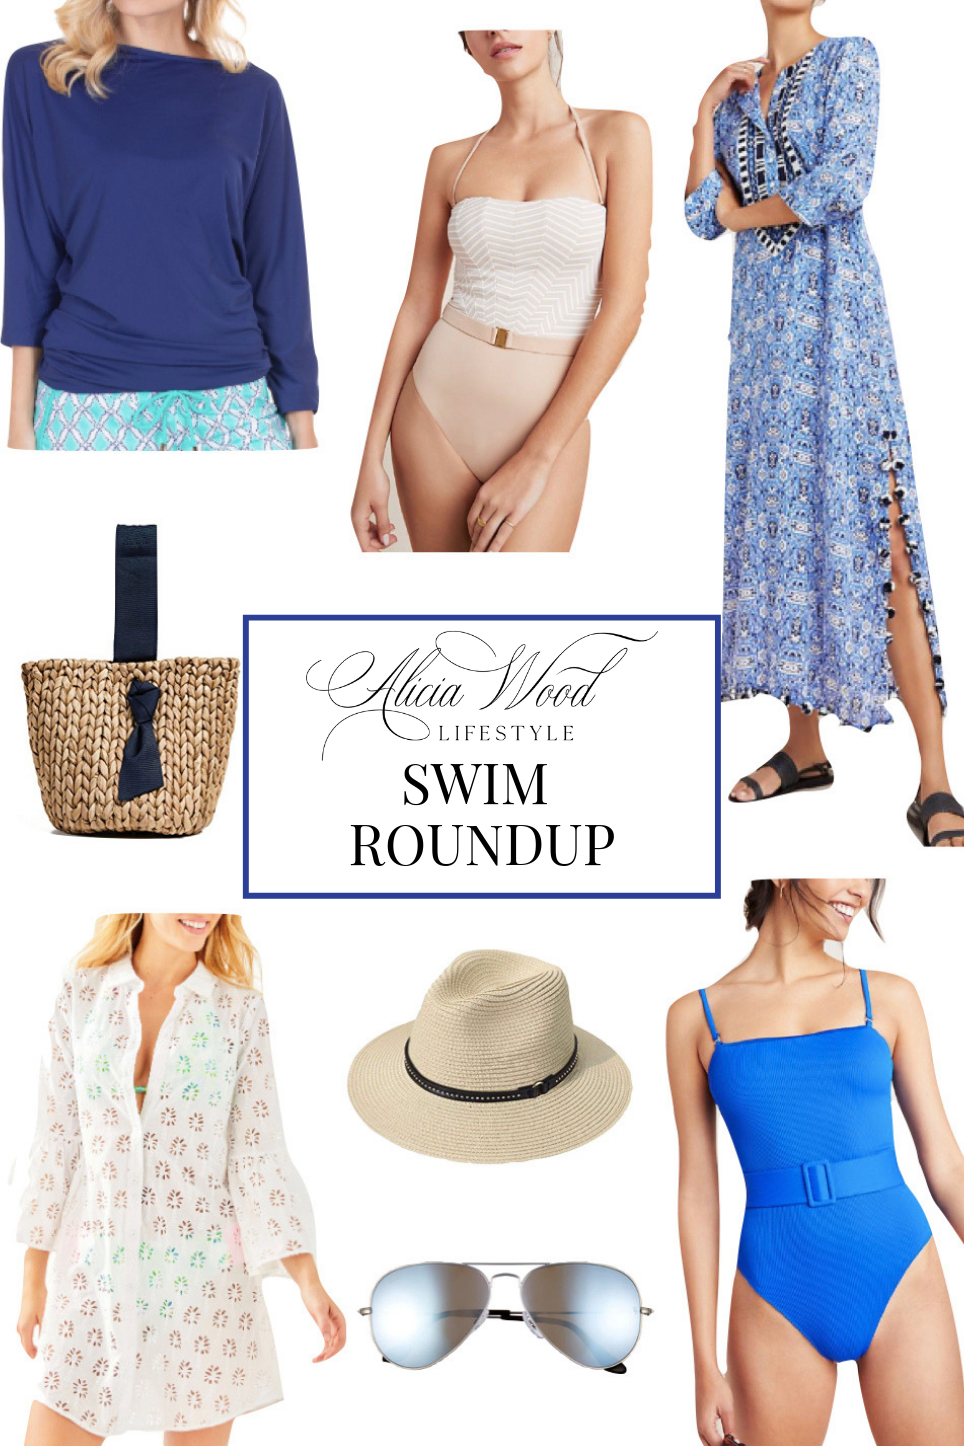 Stylish Swimwear For Summer | Coverups, Swimsuits And More!